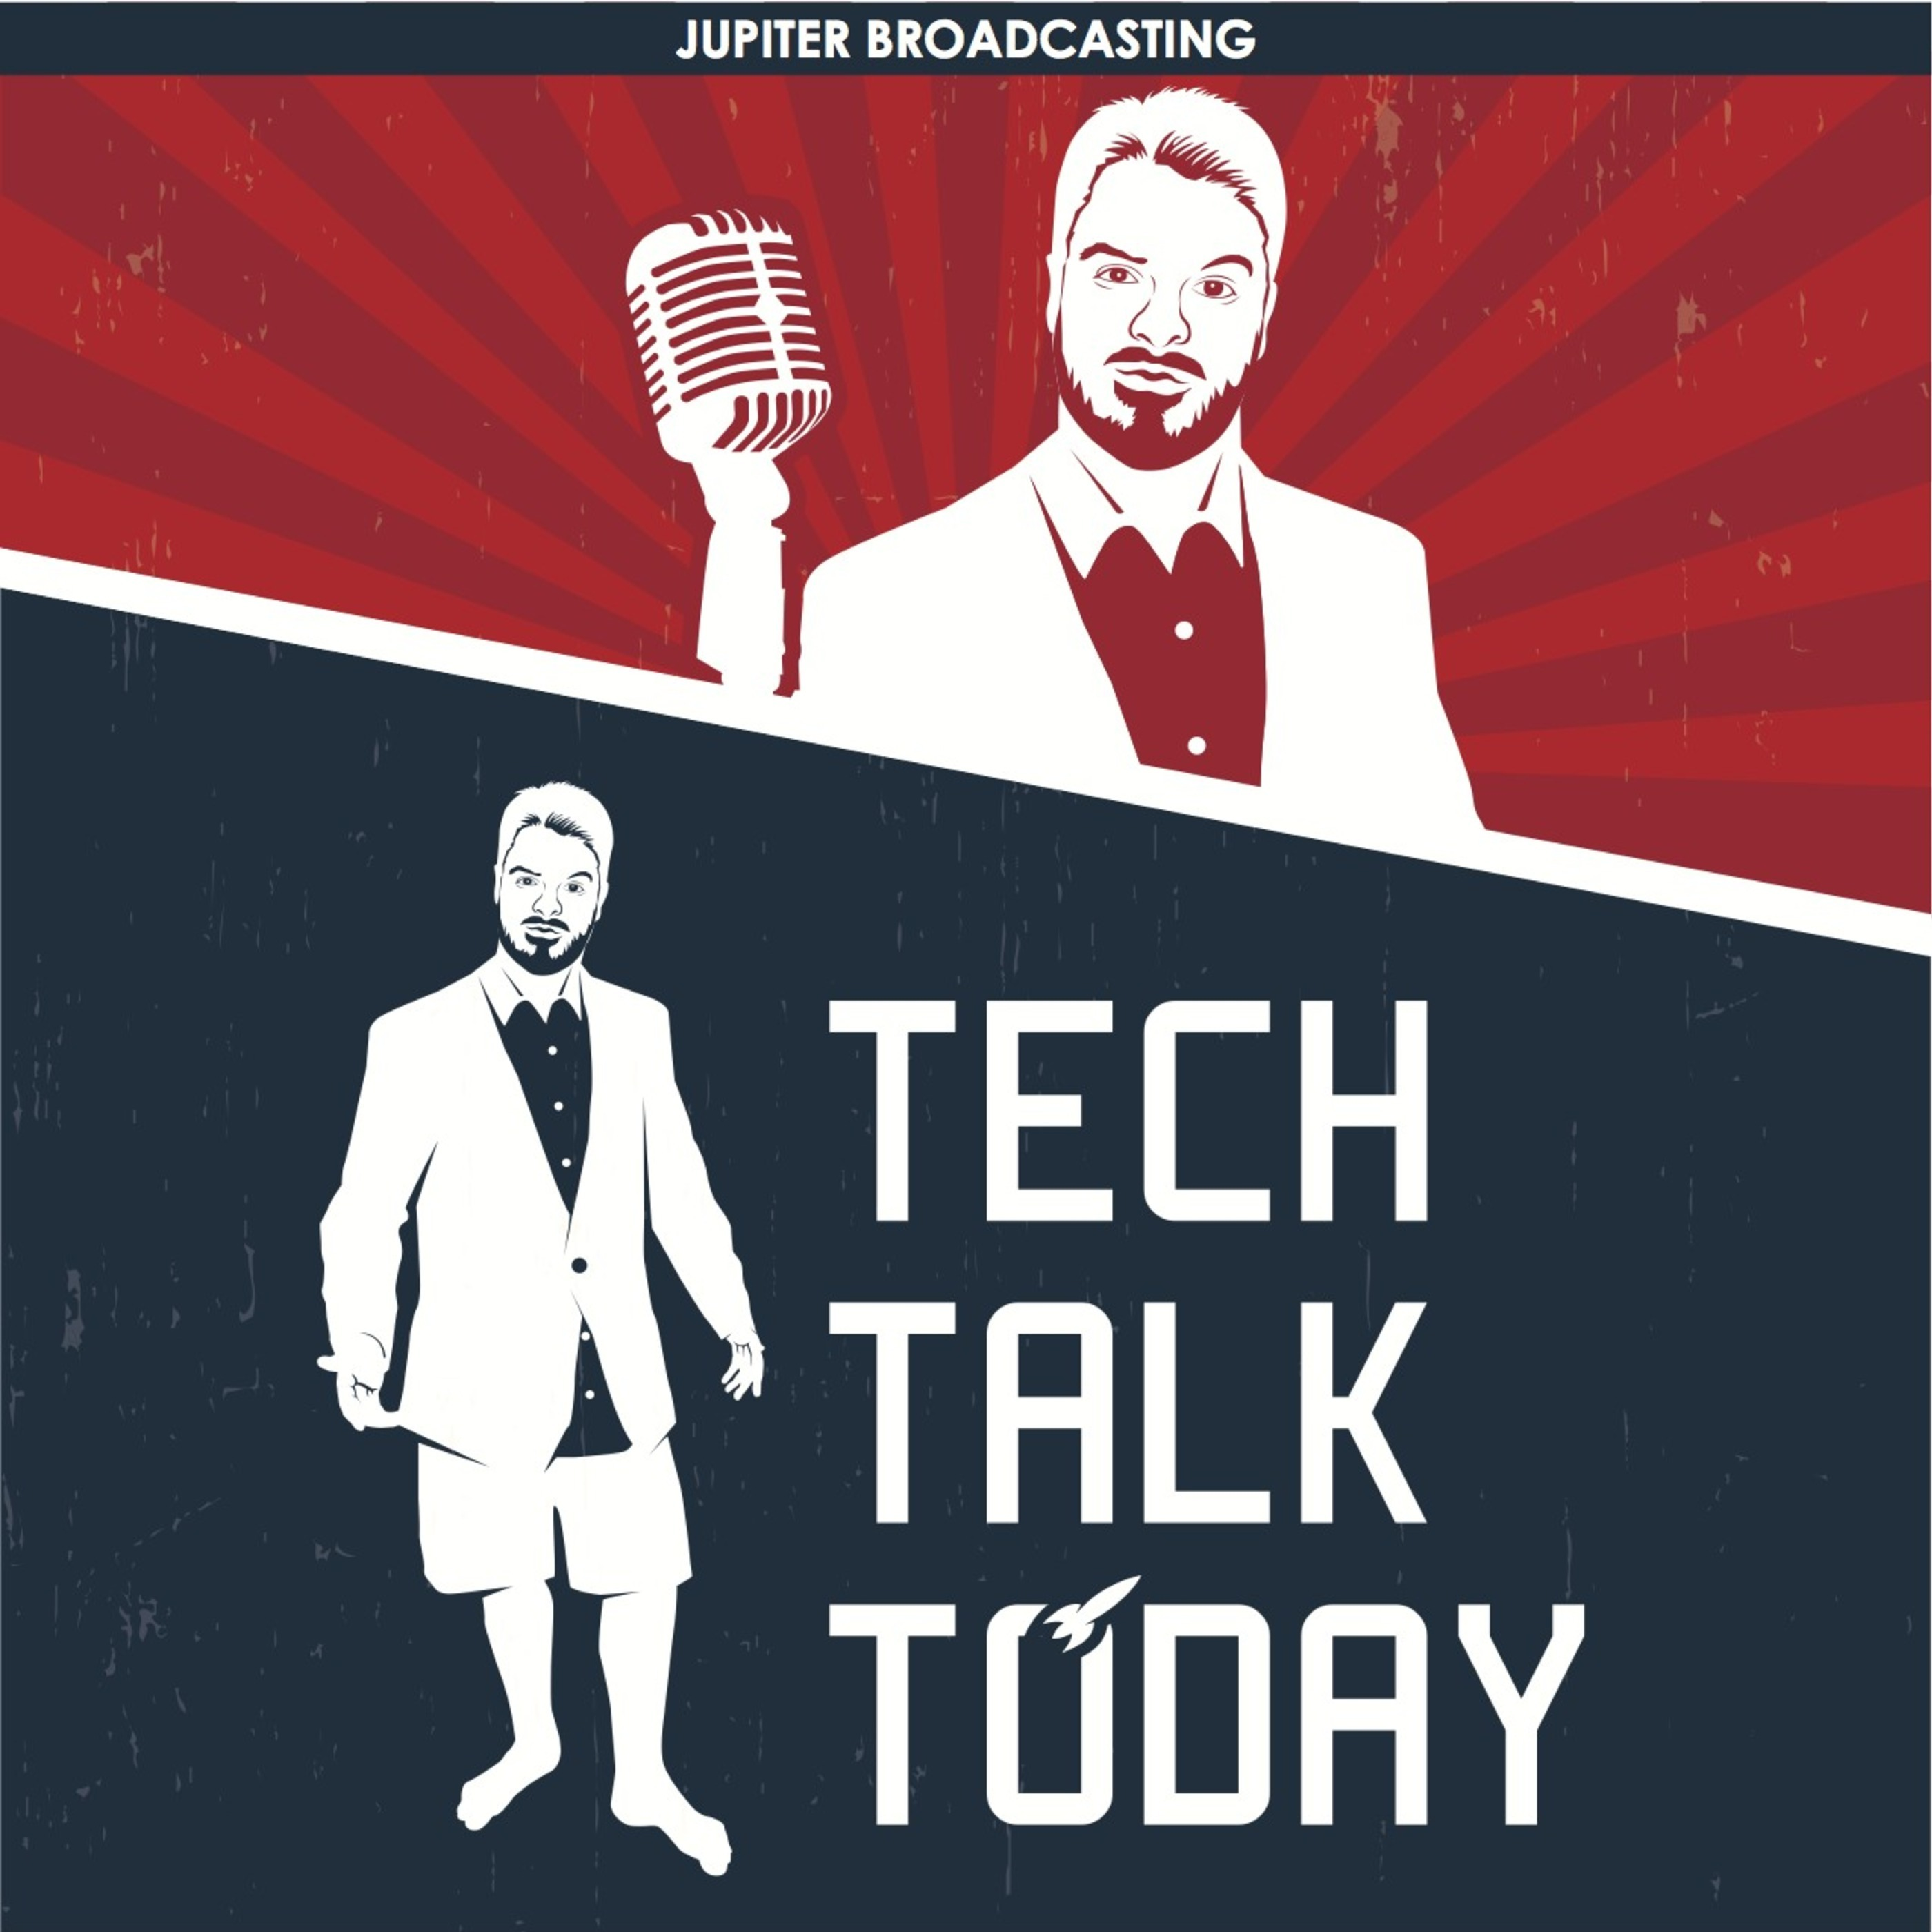 Episode 2: The Forced Touchables | Tech Talk Today 155